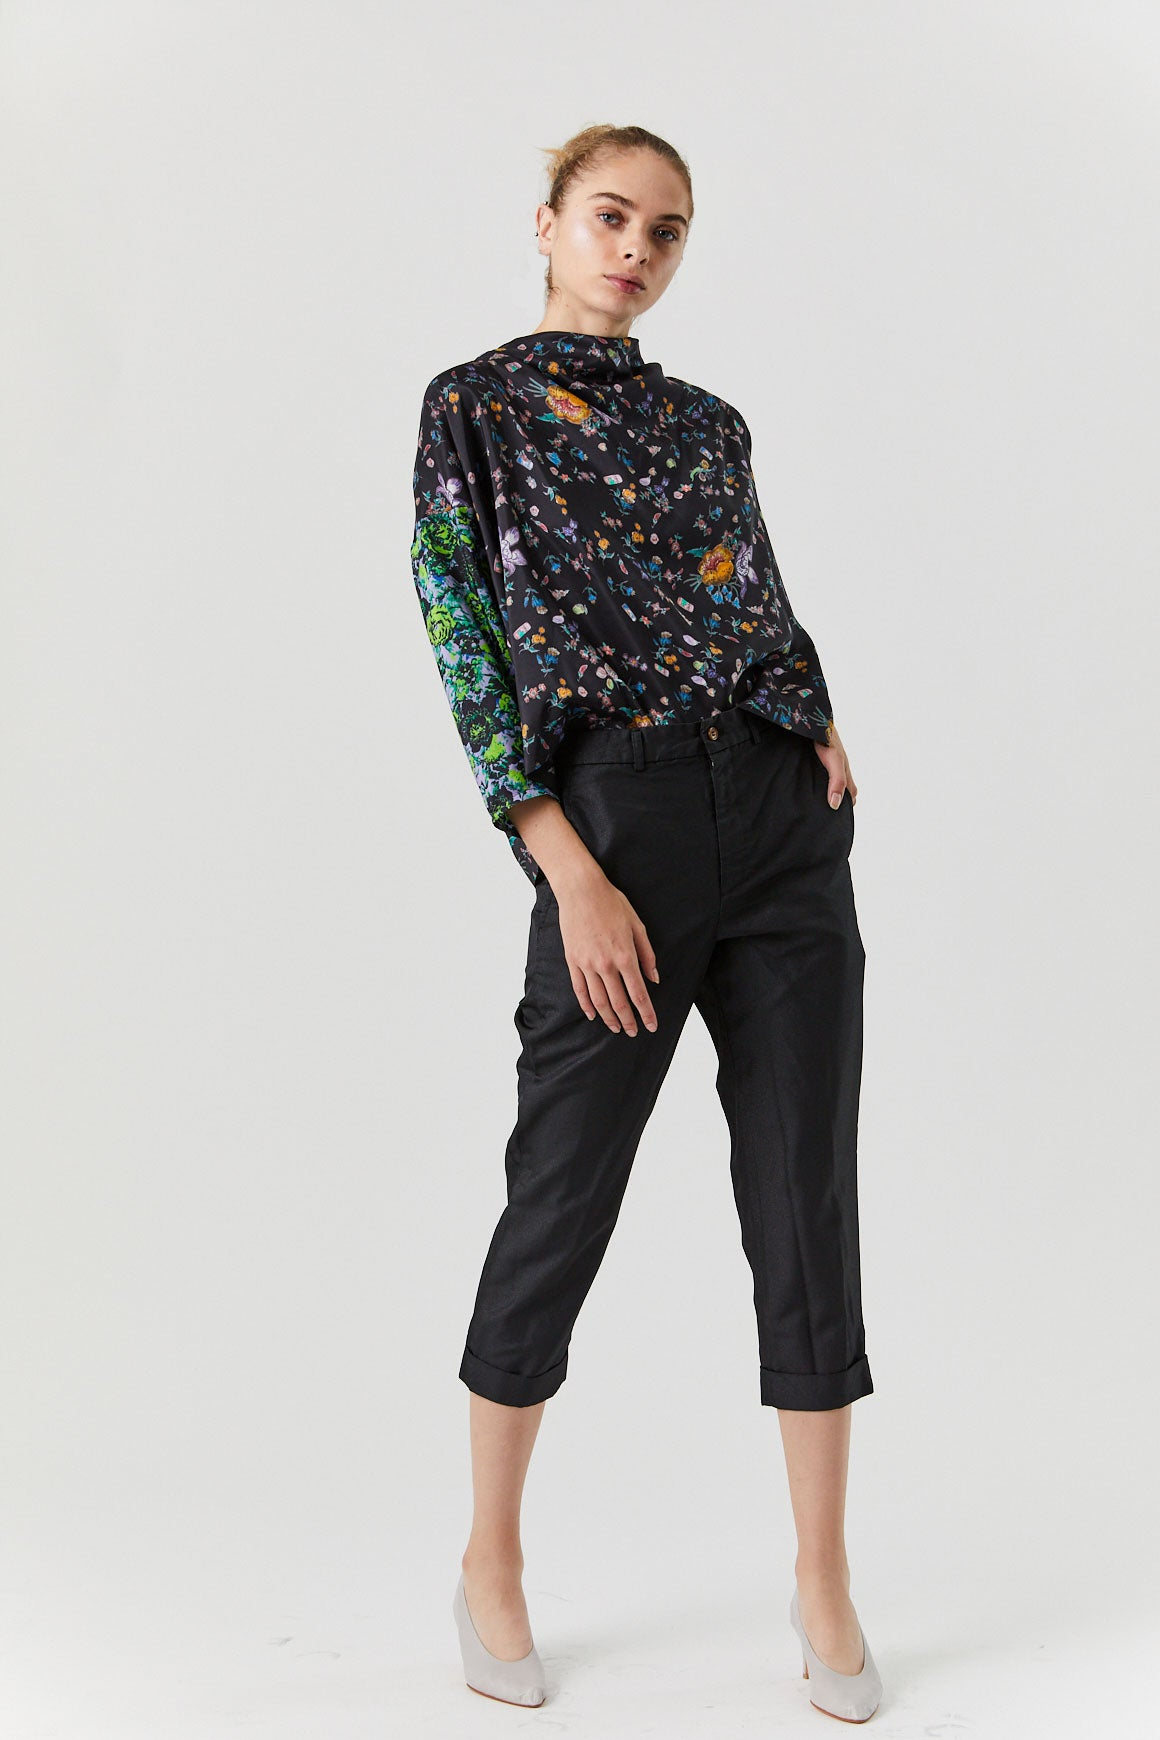 ANNTIAN - Print Top, Multi